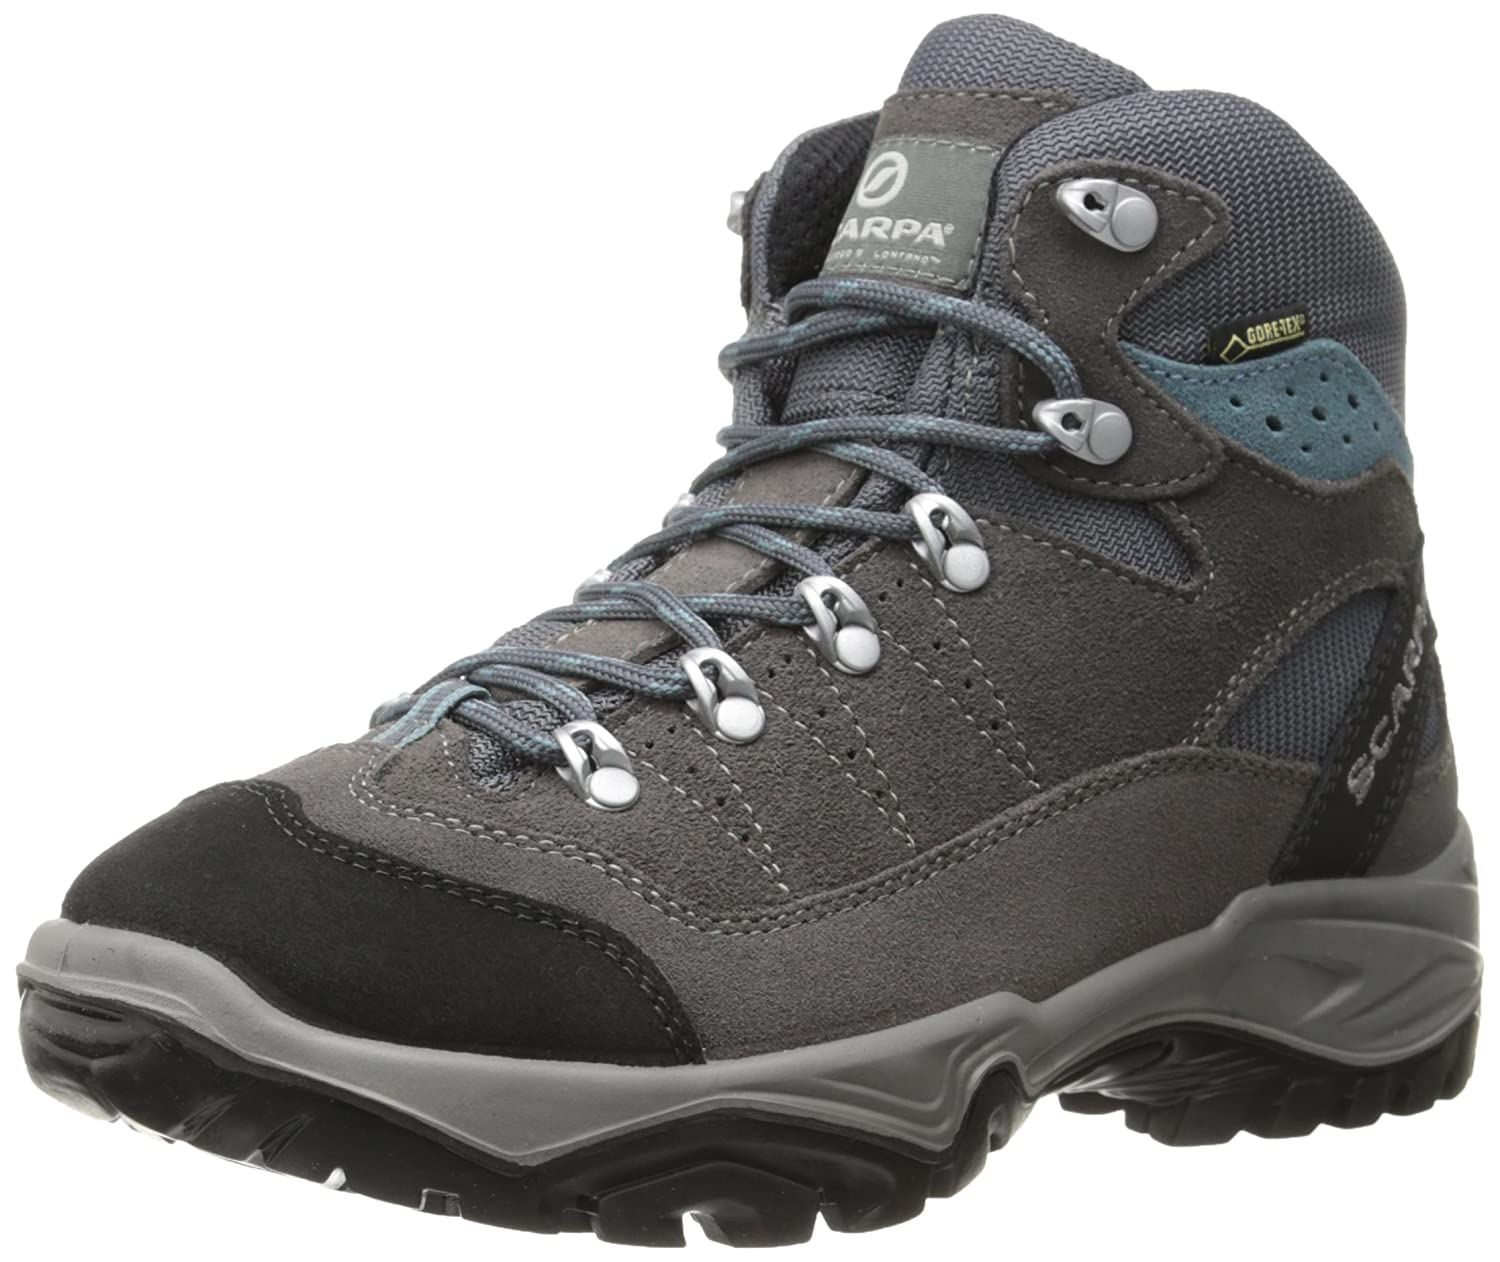 SCARPA Women's Mistral GTX Hiking Boot B00LM6PKLK 42 M EU / 10 B(M) US|Smoke/Polor Blue